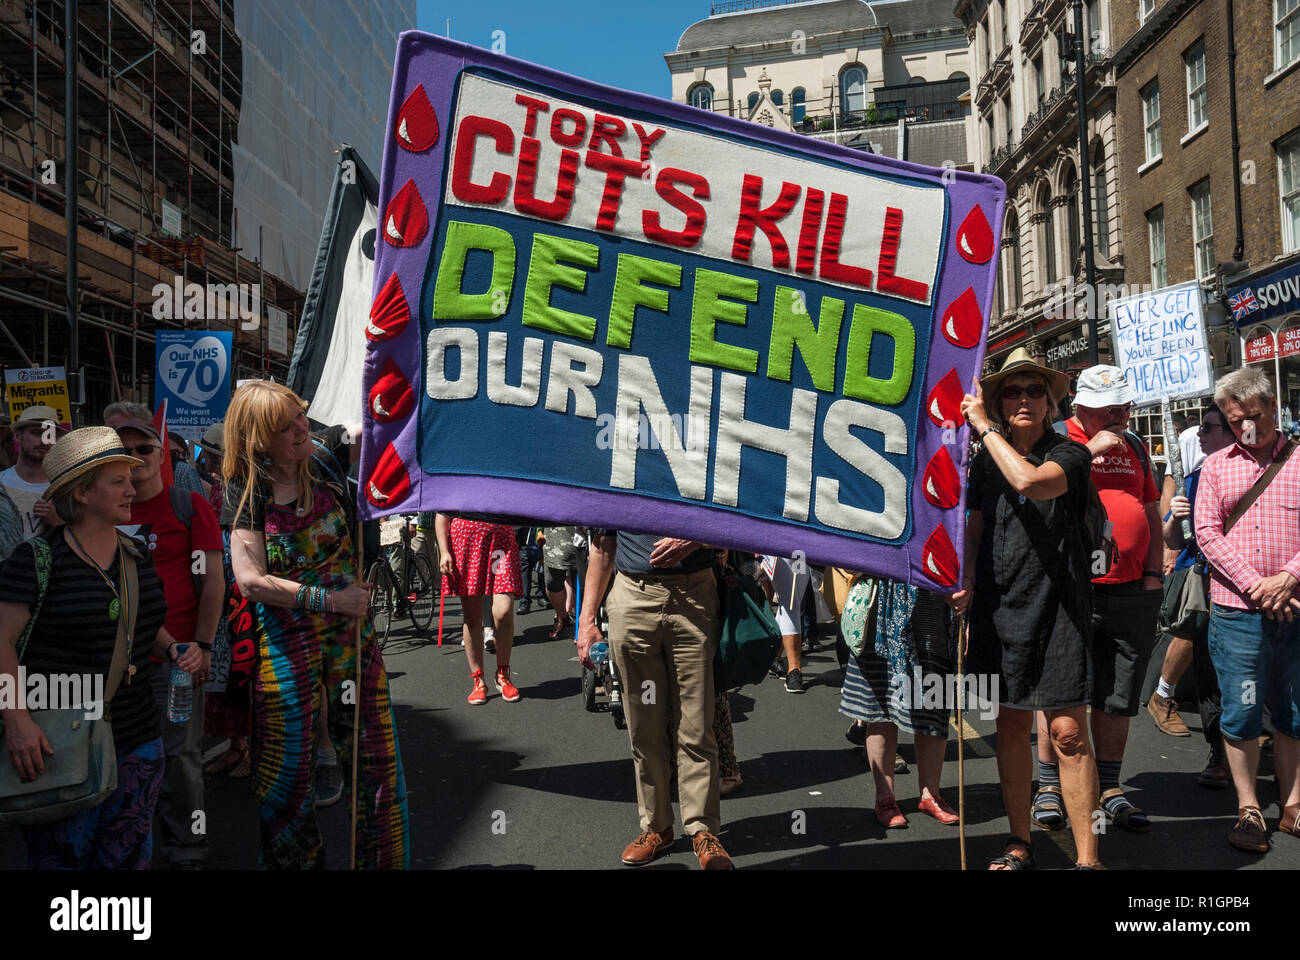 70th anniversary rally to celebrate the founding of the NHS and protest against cuts with a colourful banner 'Tory cuts kill/ defend our NHS' - Stock Image